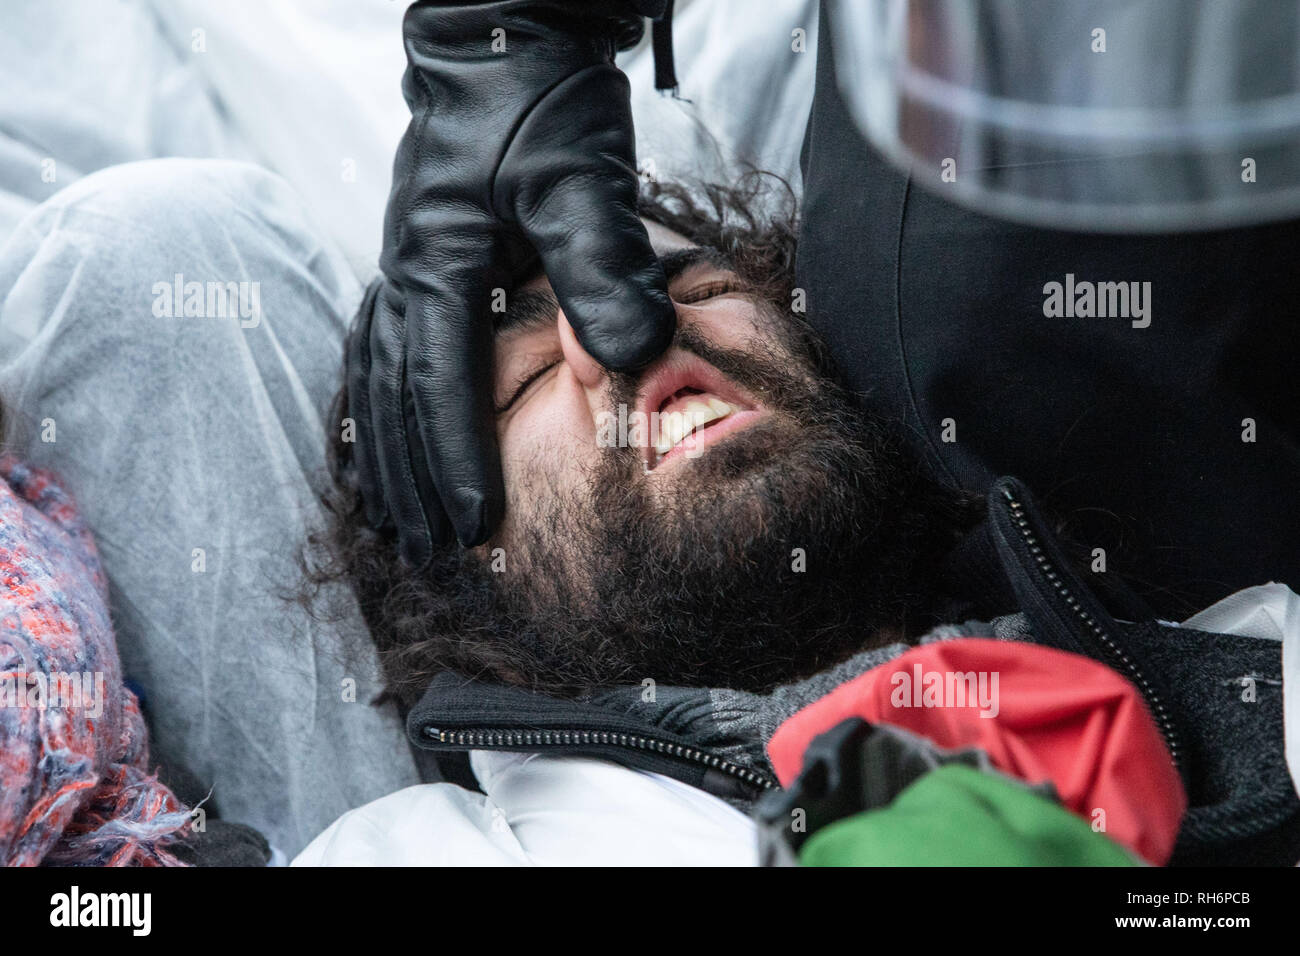 Berlin, Berlin, Germany. 1st Feb, 2019. German riot policeman puts pressure on the nose of a protester to clear him away from a road block during a demonstration of environmental activists from the movement Ende Gelaende in front of the federal ministry of Economy and Energy in Berlin, Germany, February 2, 2019.The demonstrators protested the final report of the government appointed coal commission, which recommended that coal-based power generation will be completely ended by 2038. Credit: Omer Messinger/ZUMA Wire/Alamy Live News - Stock Image